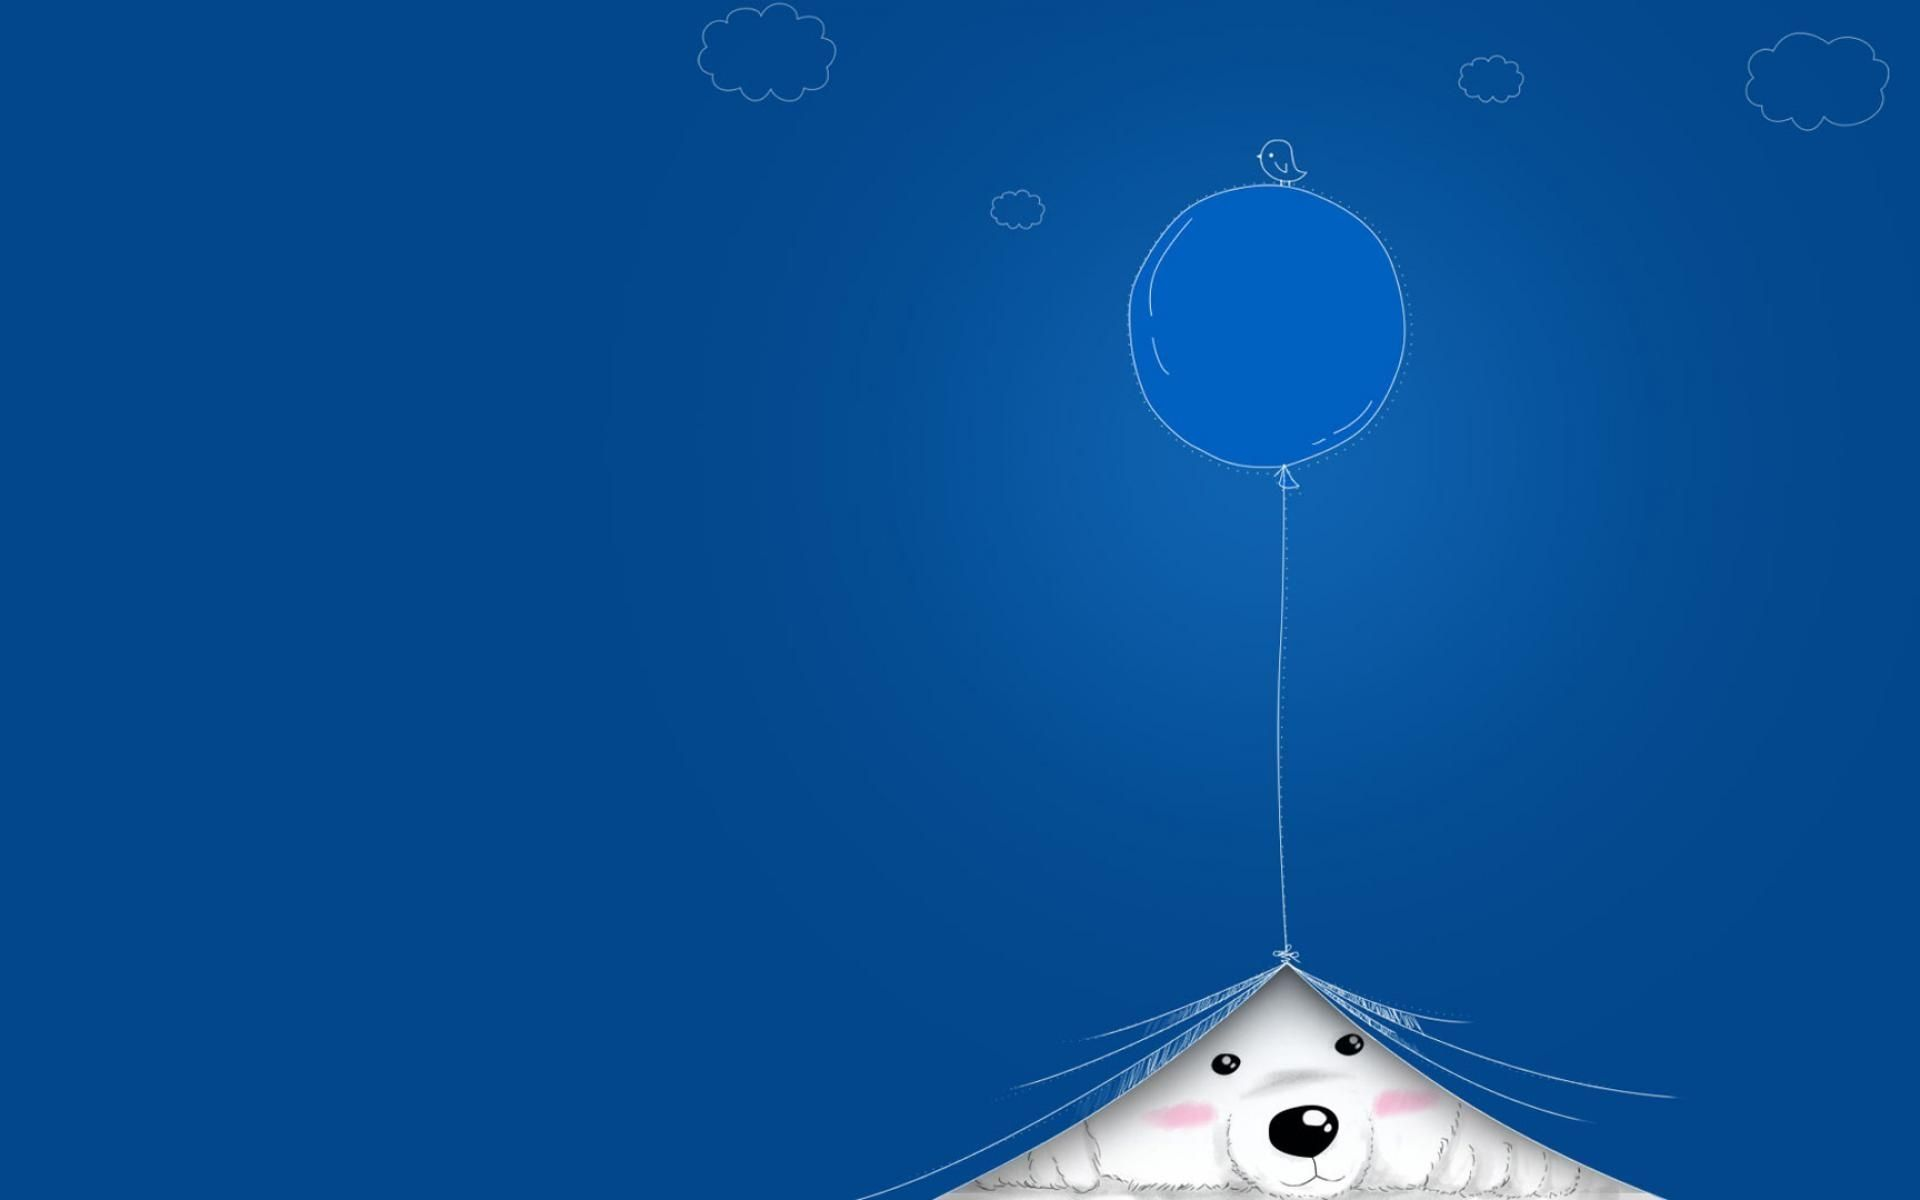 Cute Blue Wallpaper and Background